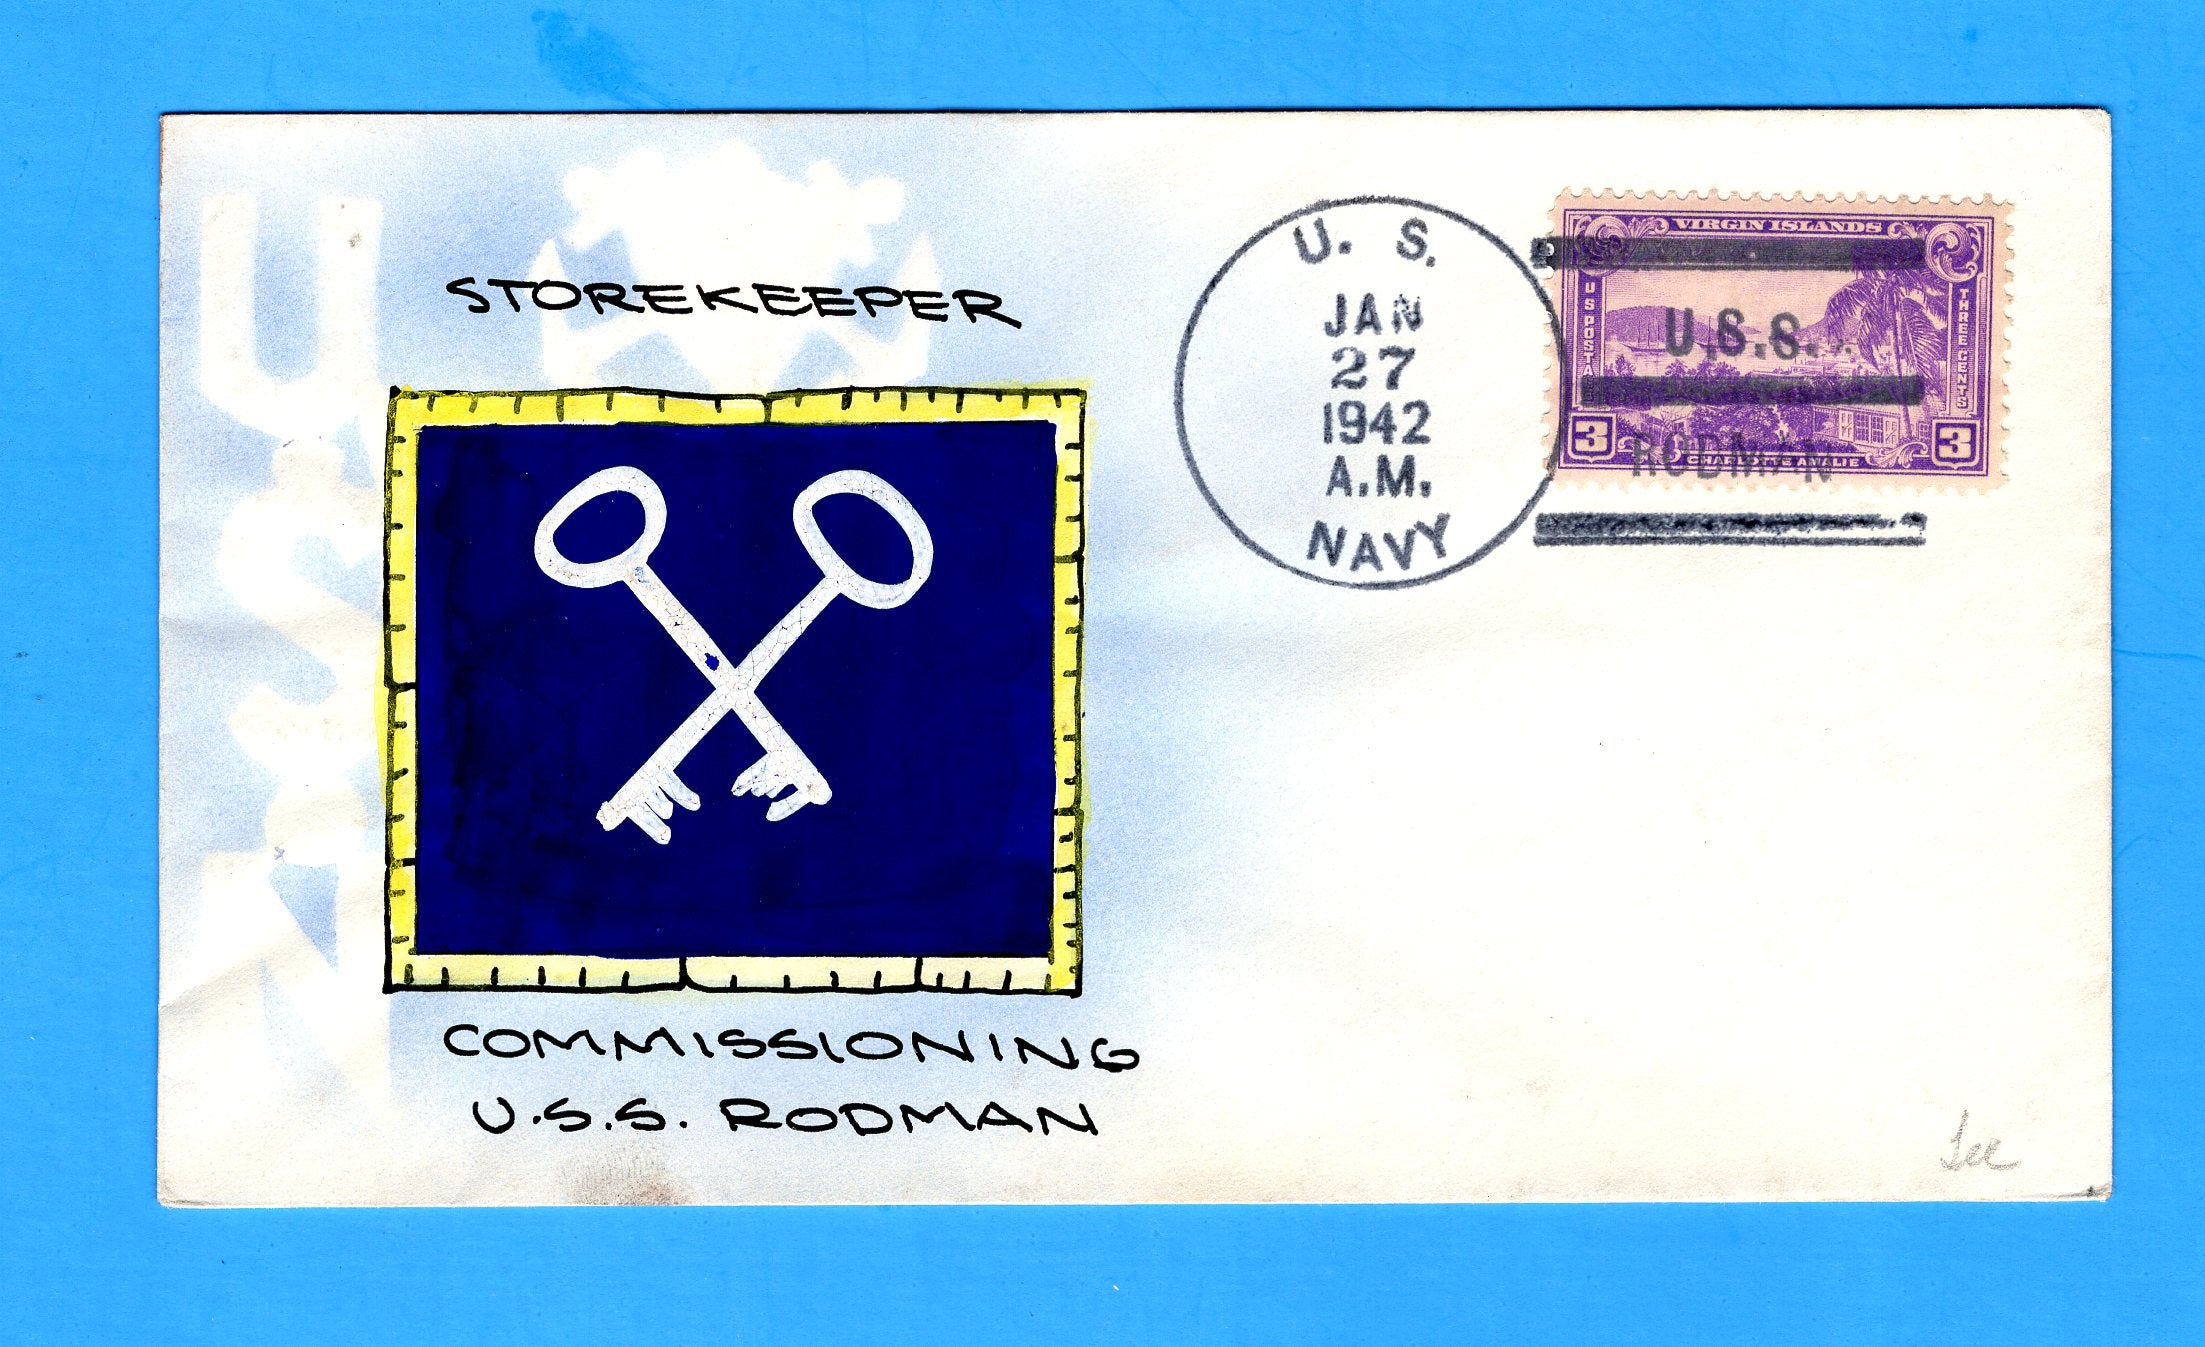 USS Rodman DD-456 Commissioned and First Day of Postal Service January 27, 1942 - Mae Weigand Hand Painted Cachet